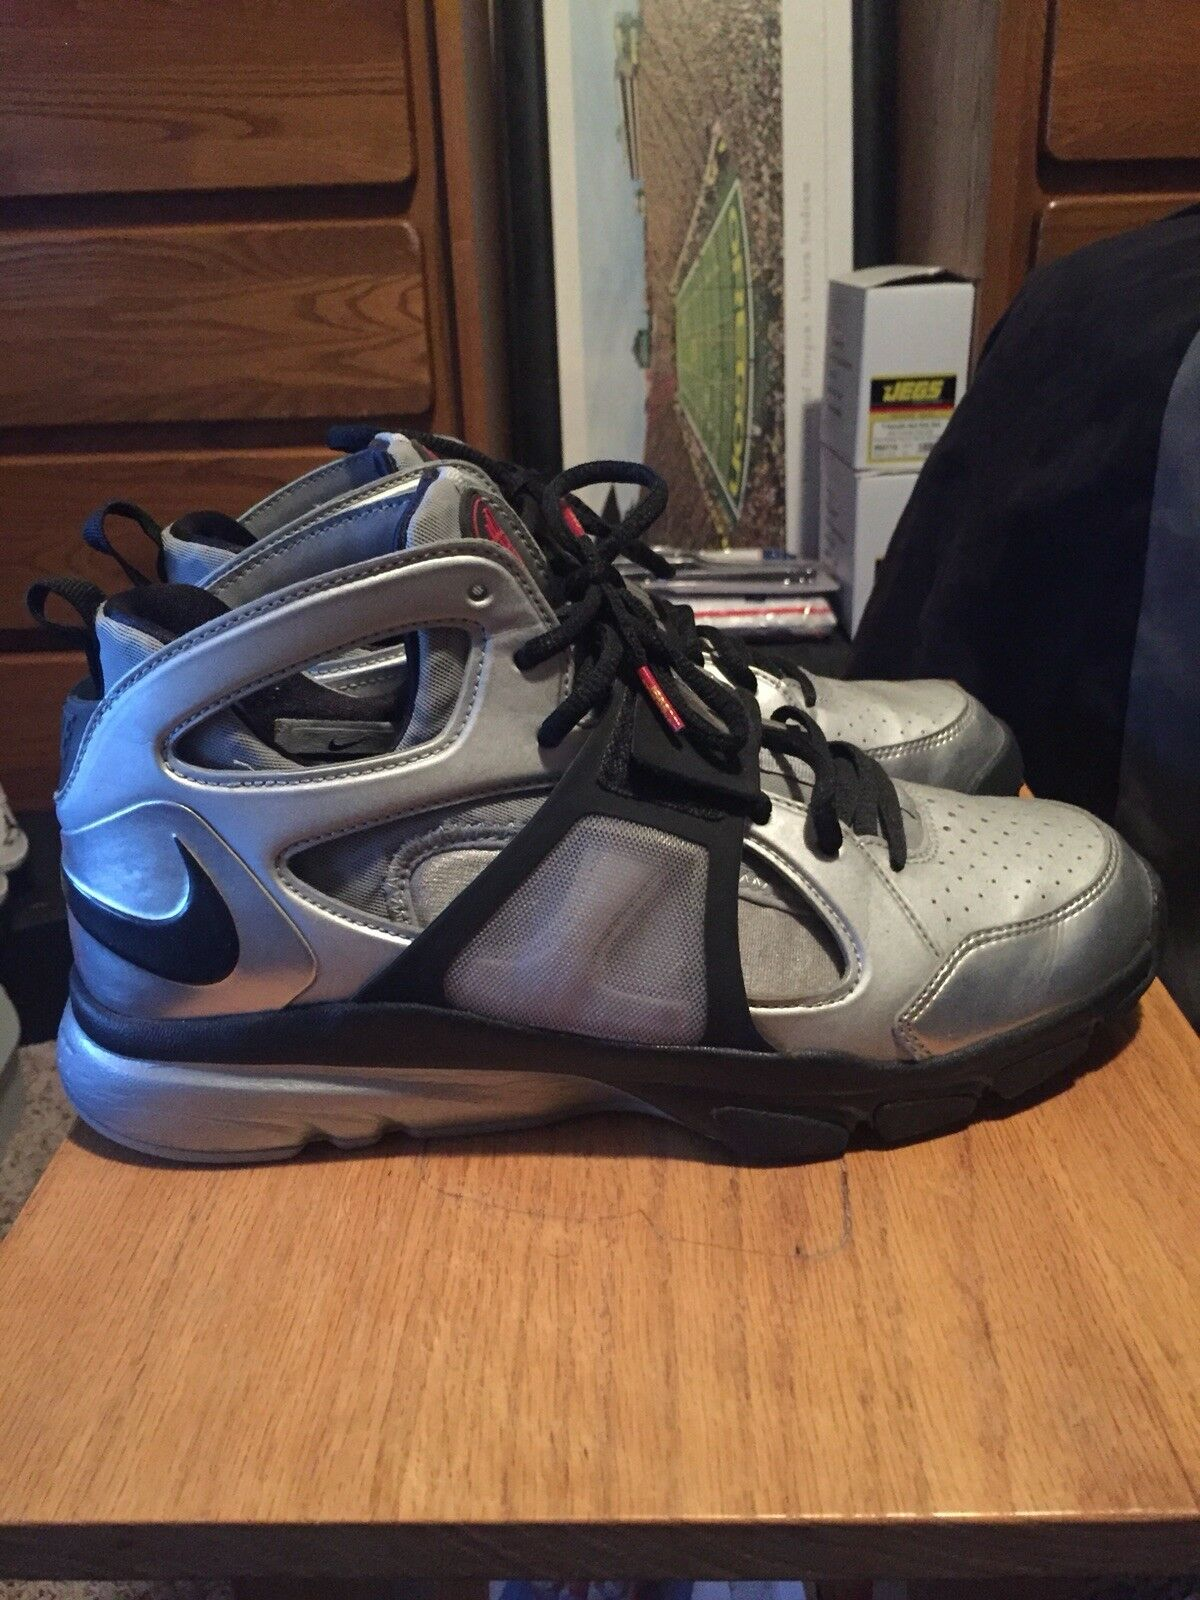 NIKE Zoom Huarache TR MID WM Alpha Trainer size 10. Silver